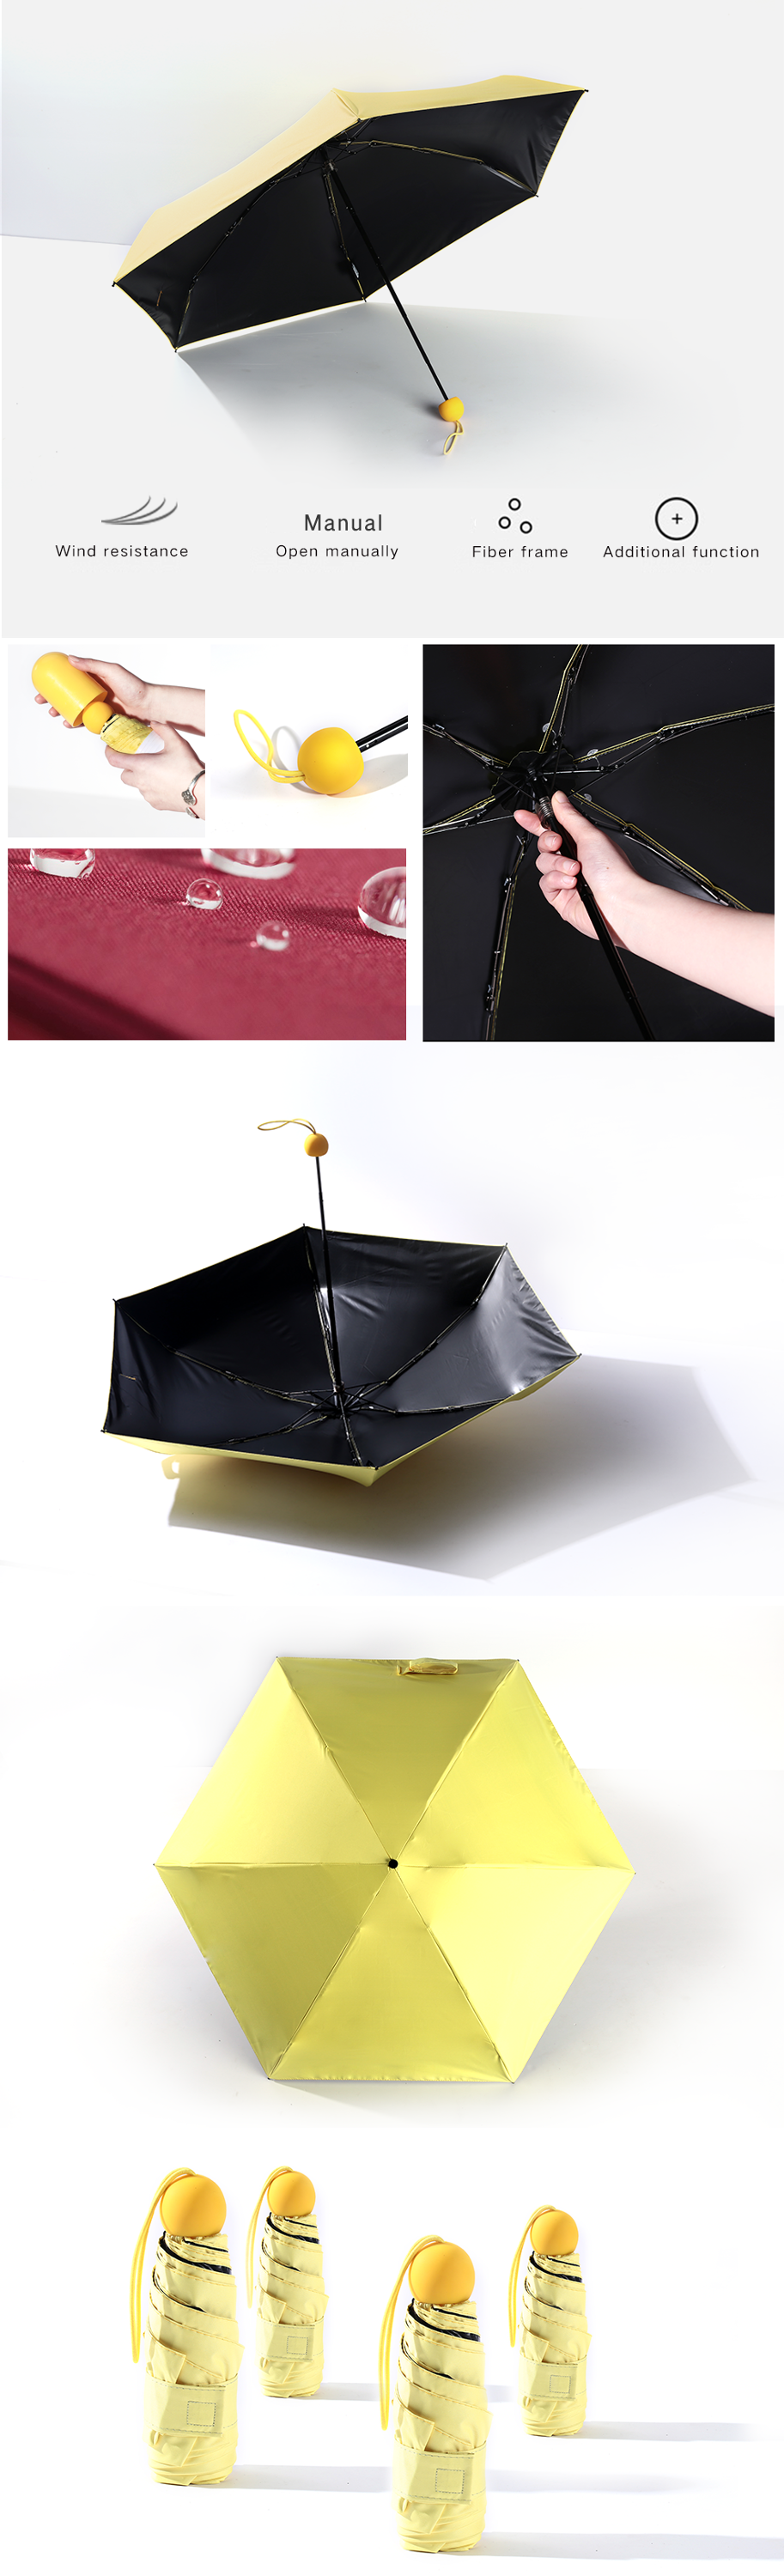 5 folding Capsule umbrella advertising05